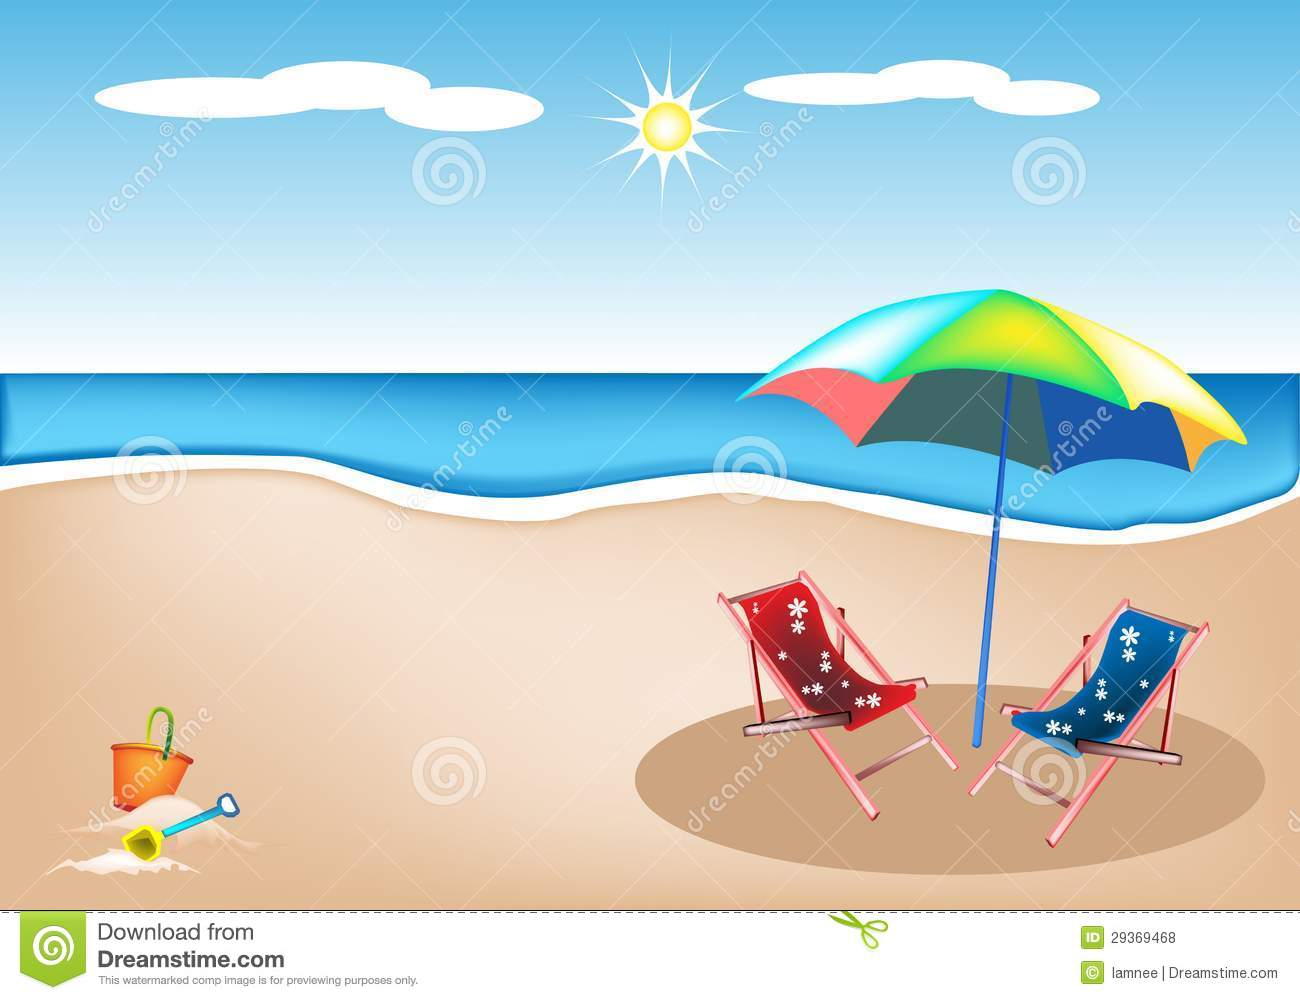 Illustration Of Beach Chairs With Umbrella And Toy Royalty Free Stock ...